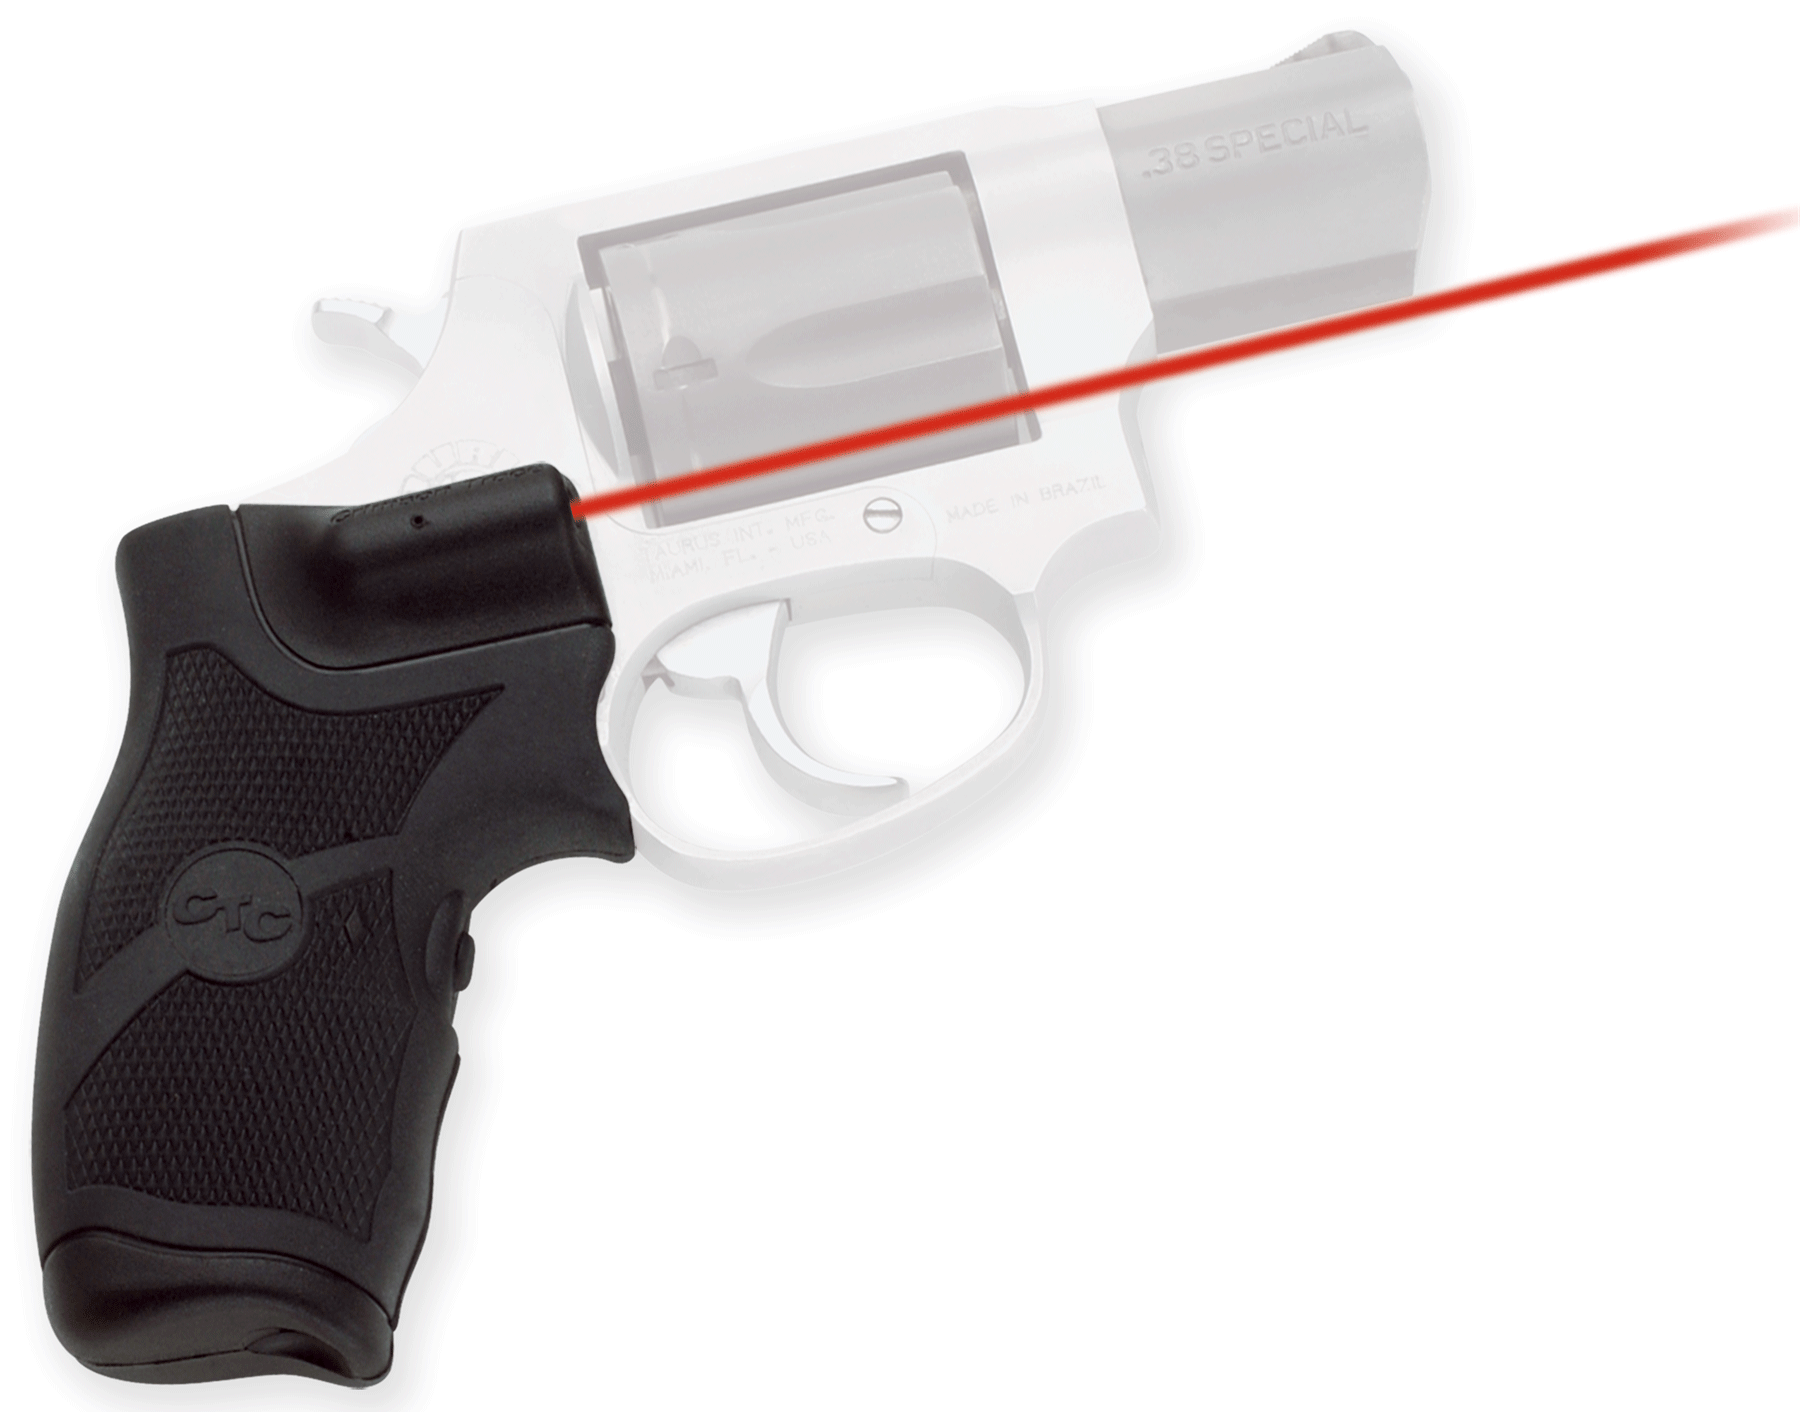 Crimson Trace® Lasergrips® - Taurus® Revolvers - Rubber Overmold Grip - Red Laser